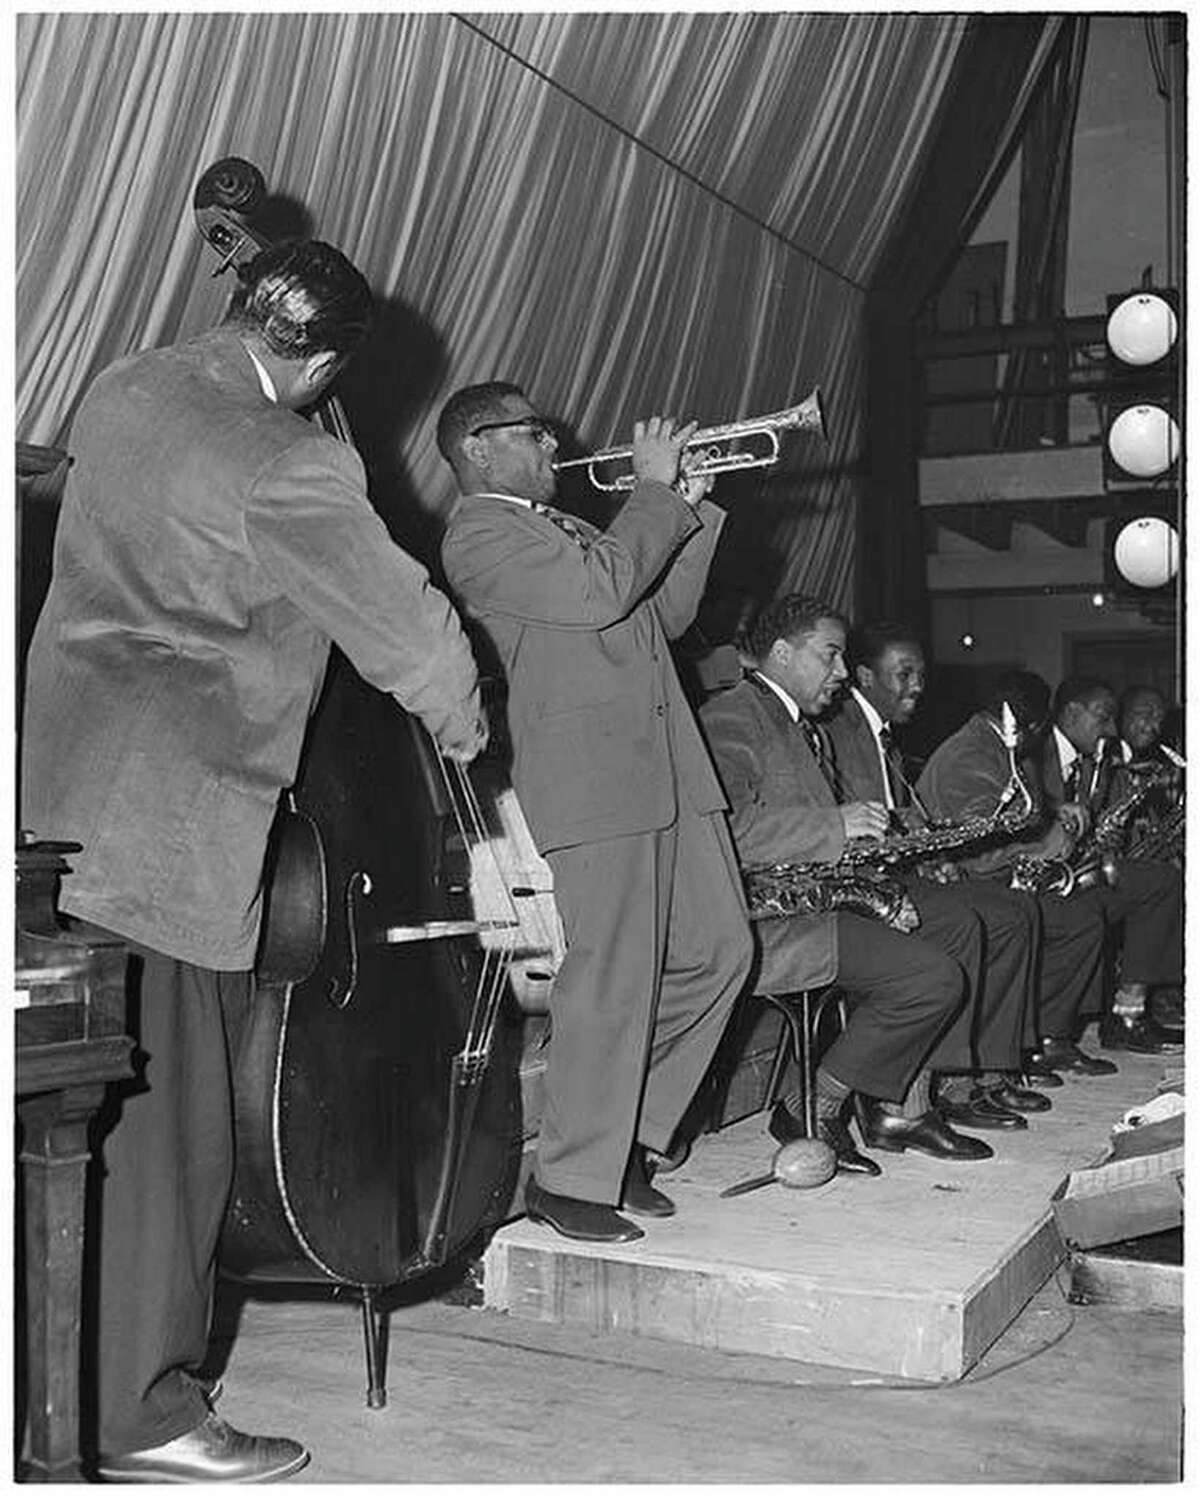 On February 19, 1949, trumpeter Dizzy Gillespie and his orchestra played at Seattle's Senator Ballroom. Here, Gillespie plays, accompanied by bass and the rest of the orchestra. His big band bebop style was new to Seattle musicians. Courtesy of MOHAI, Al Smith Collection, 2014.49.002-011-0034